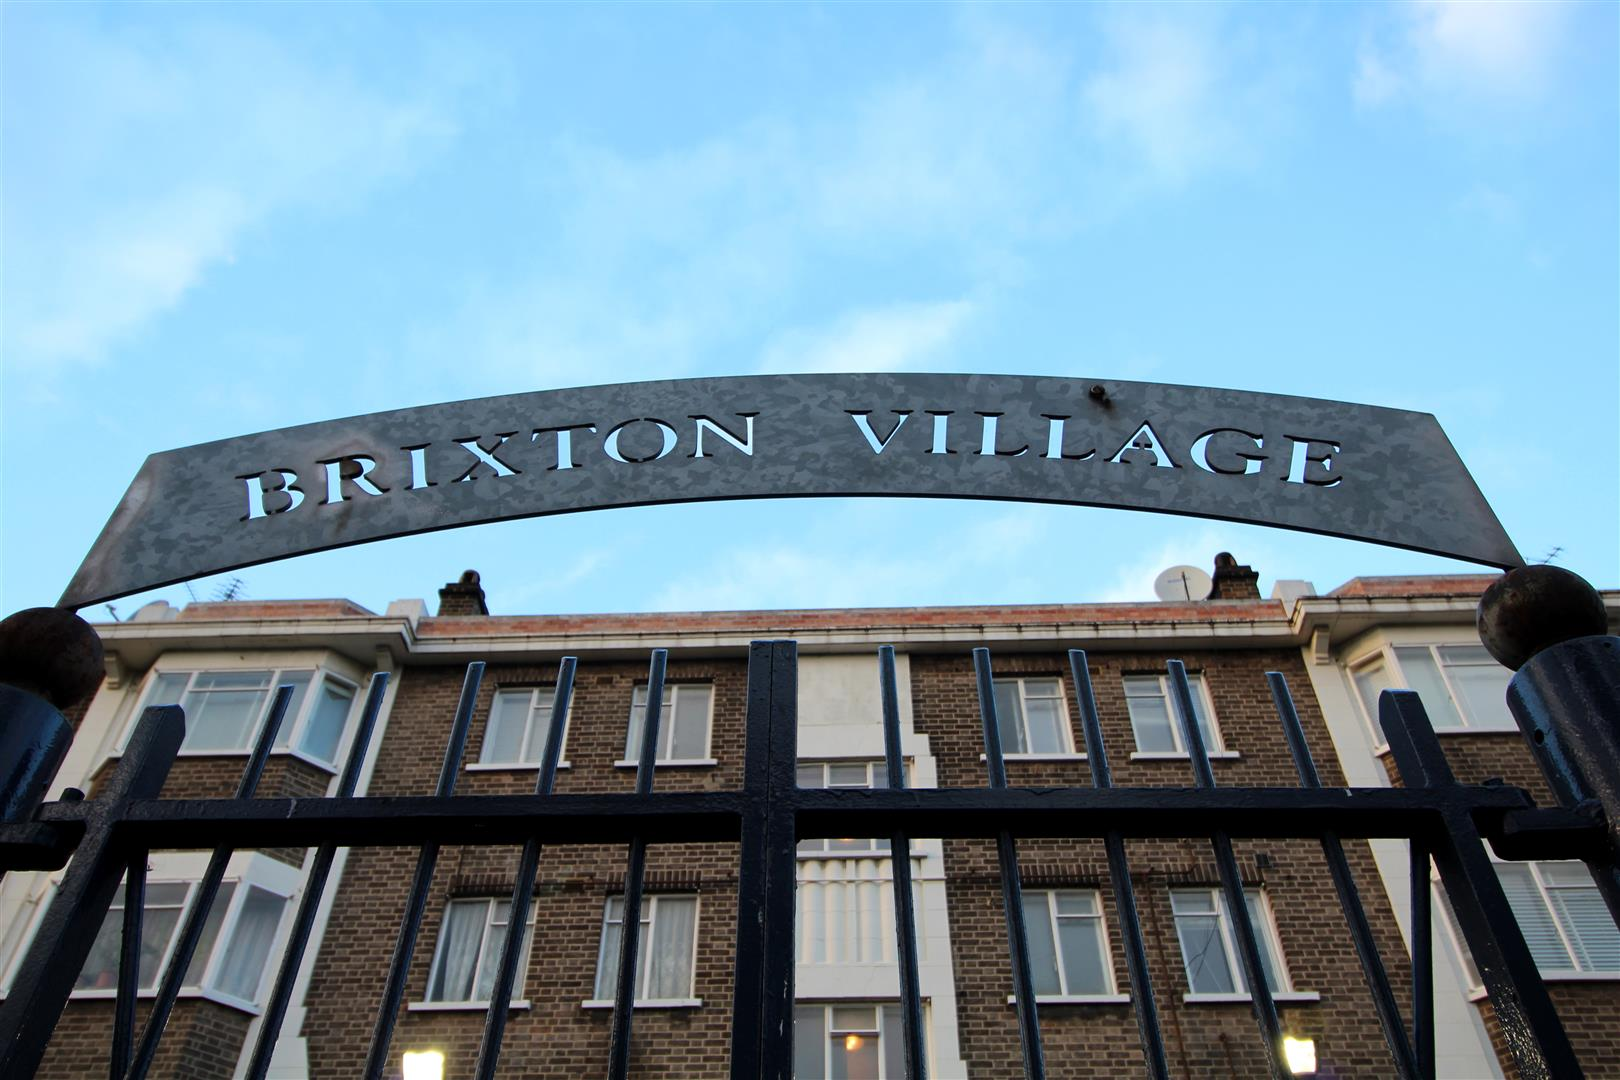 Brixton Village, Coldharbour Lane, Brixton Image 9